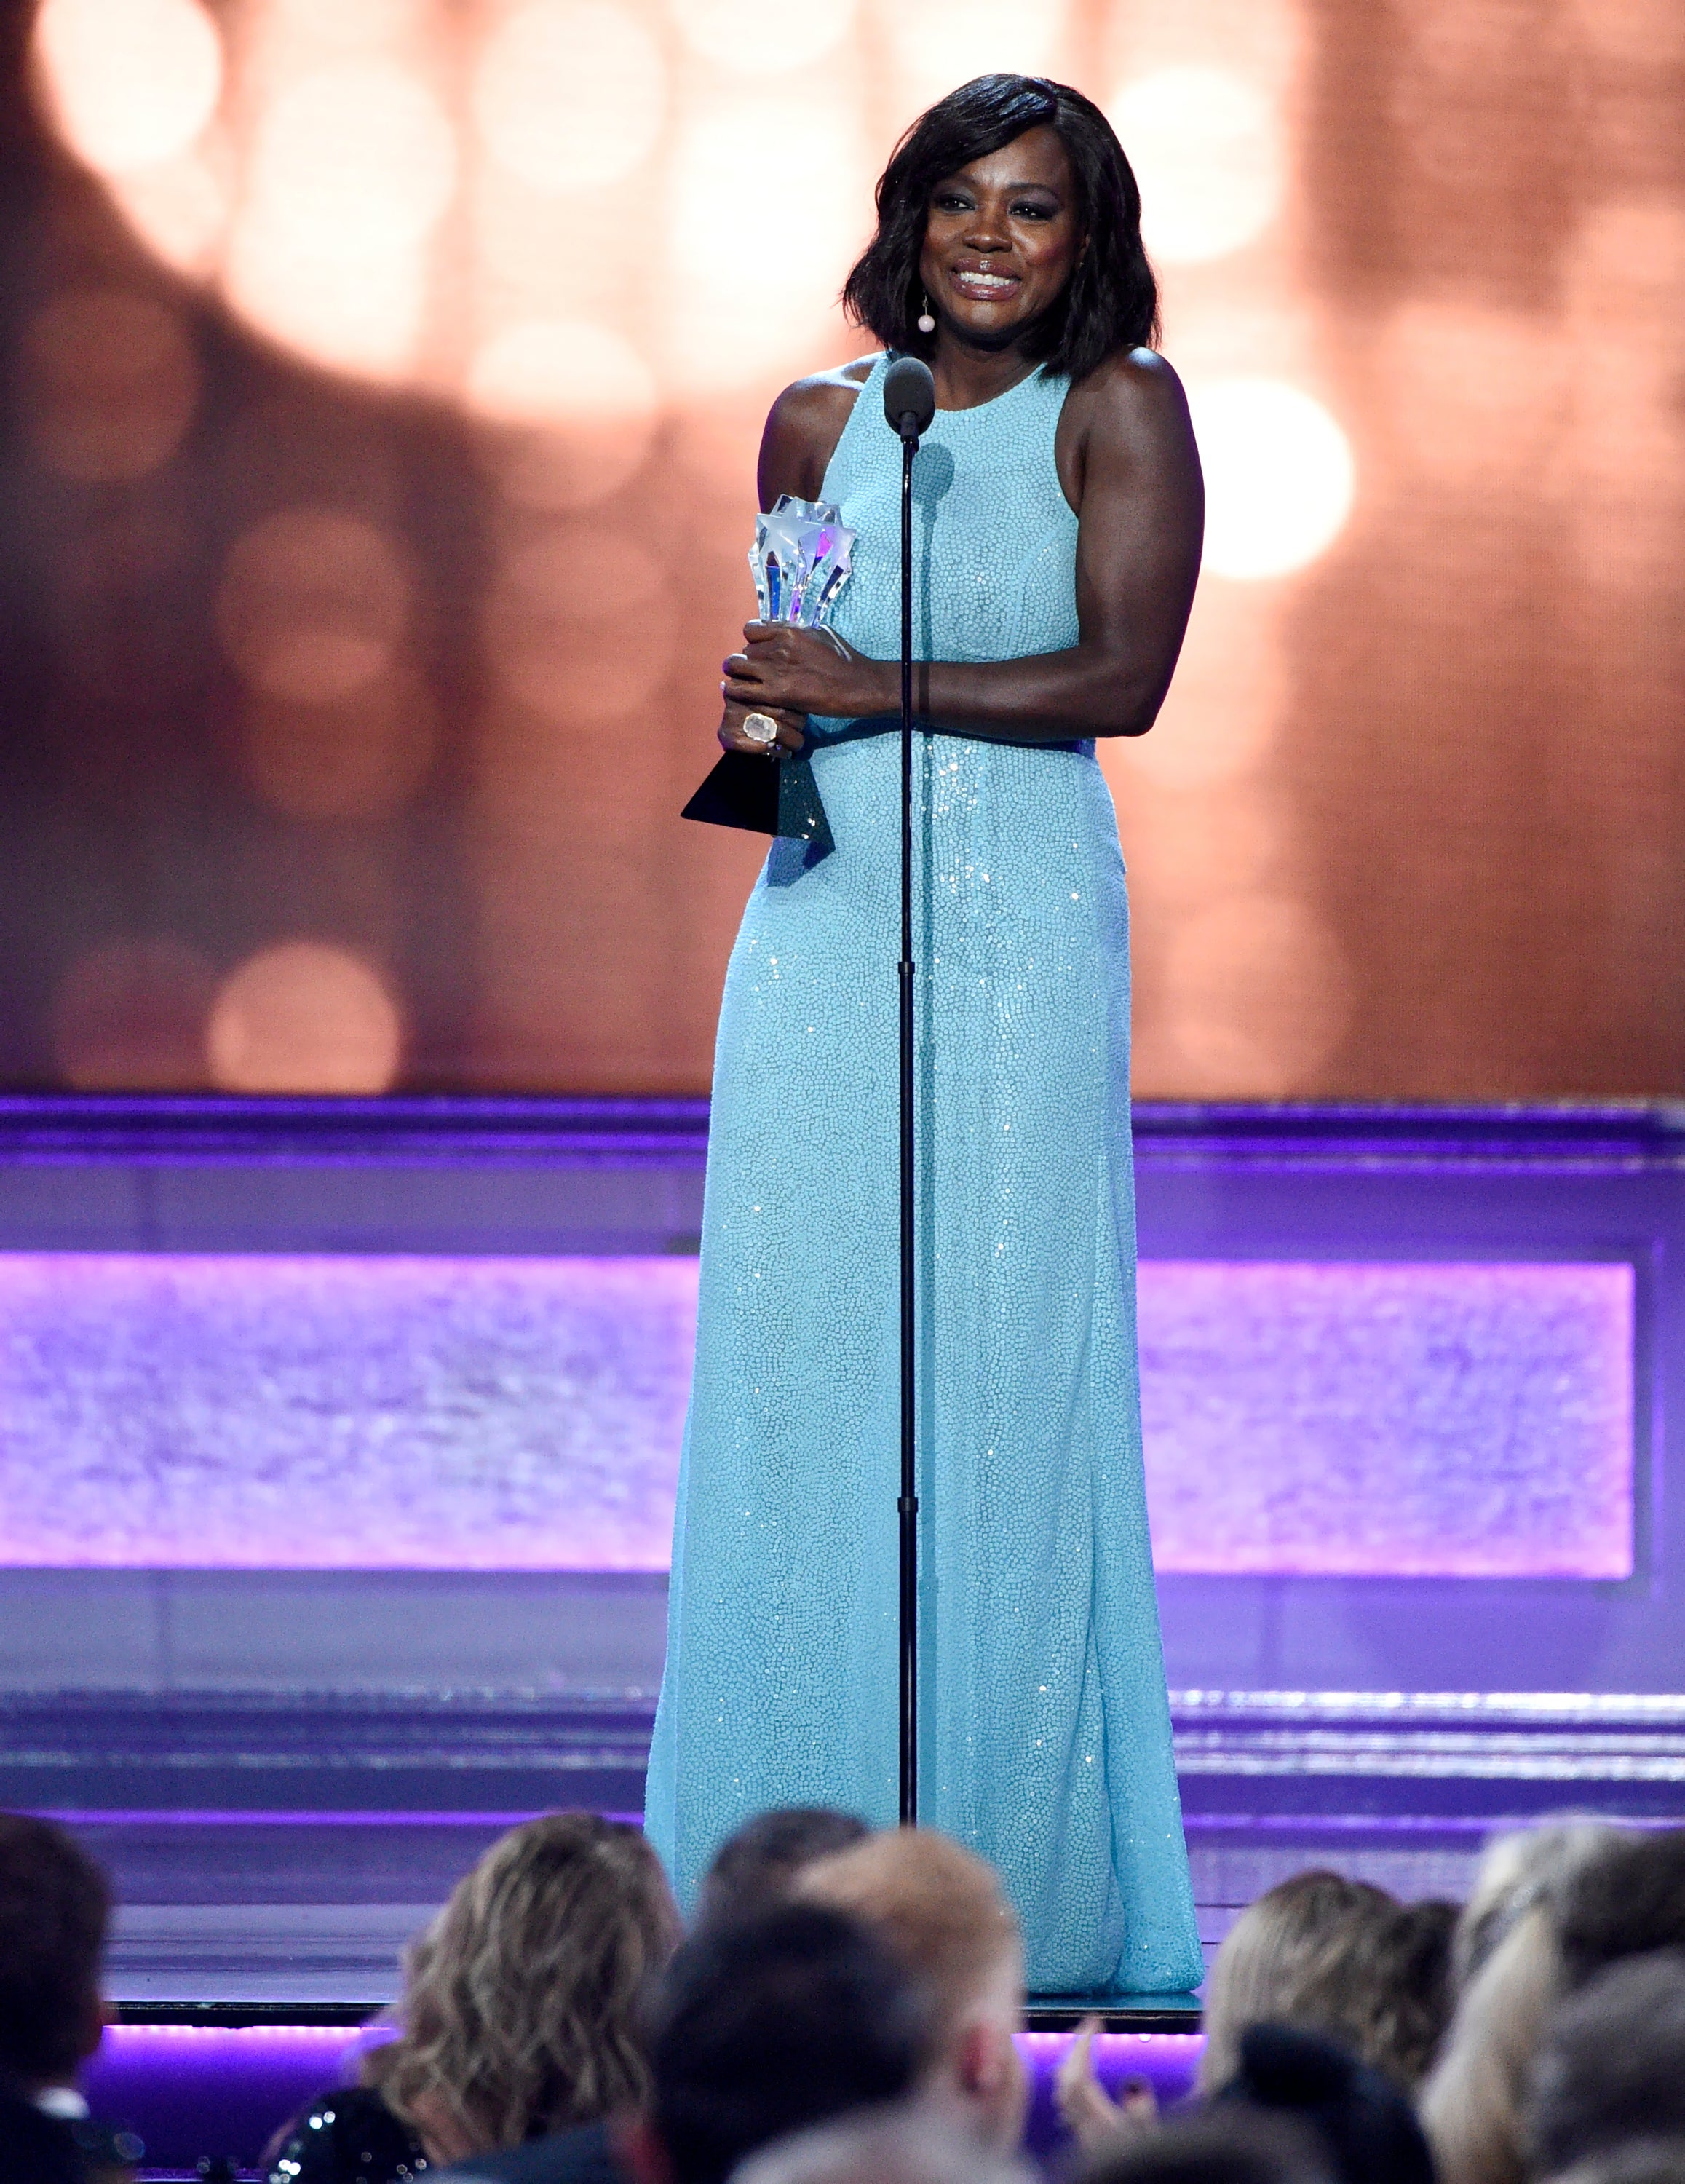 Viola Davis Delivers Powerful Message of Self-Acceptance: 'The Privilege of a Lifetime Is Being Who You Are'